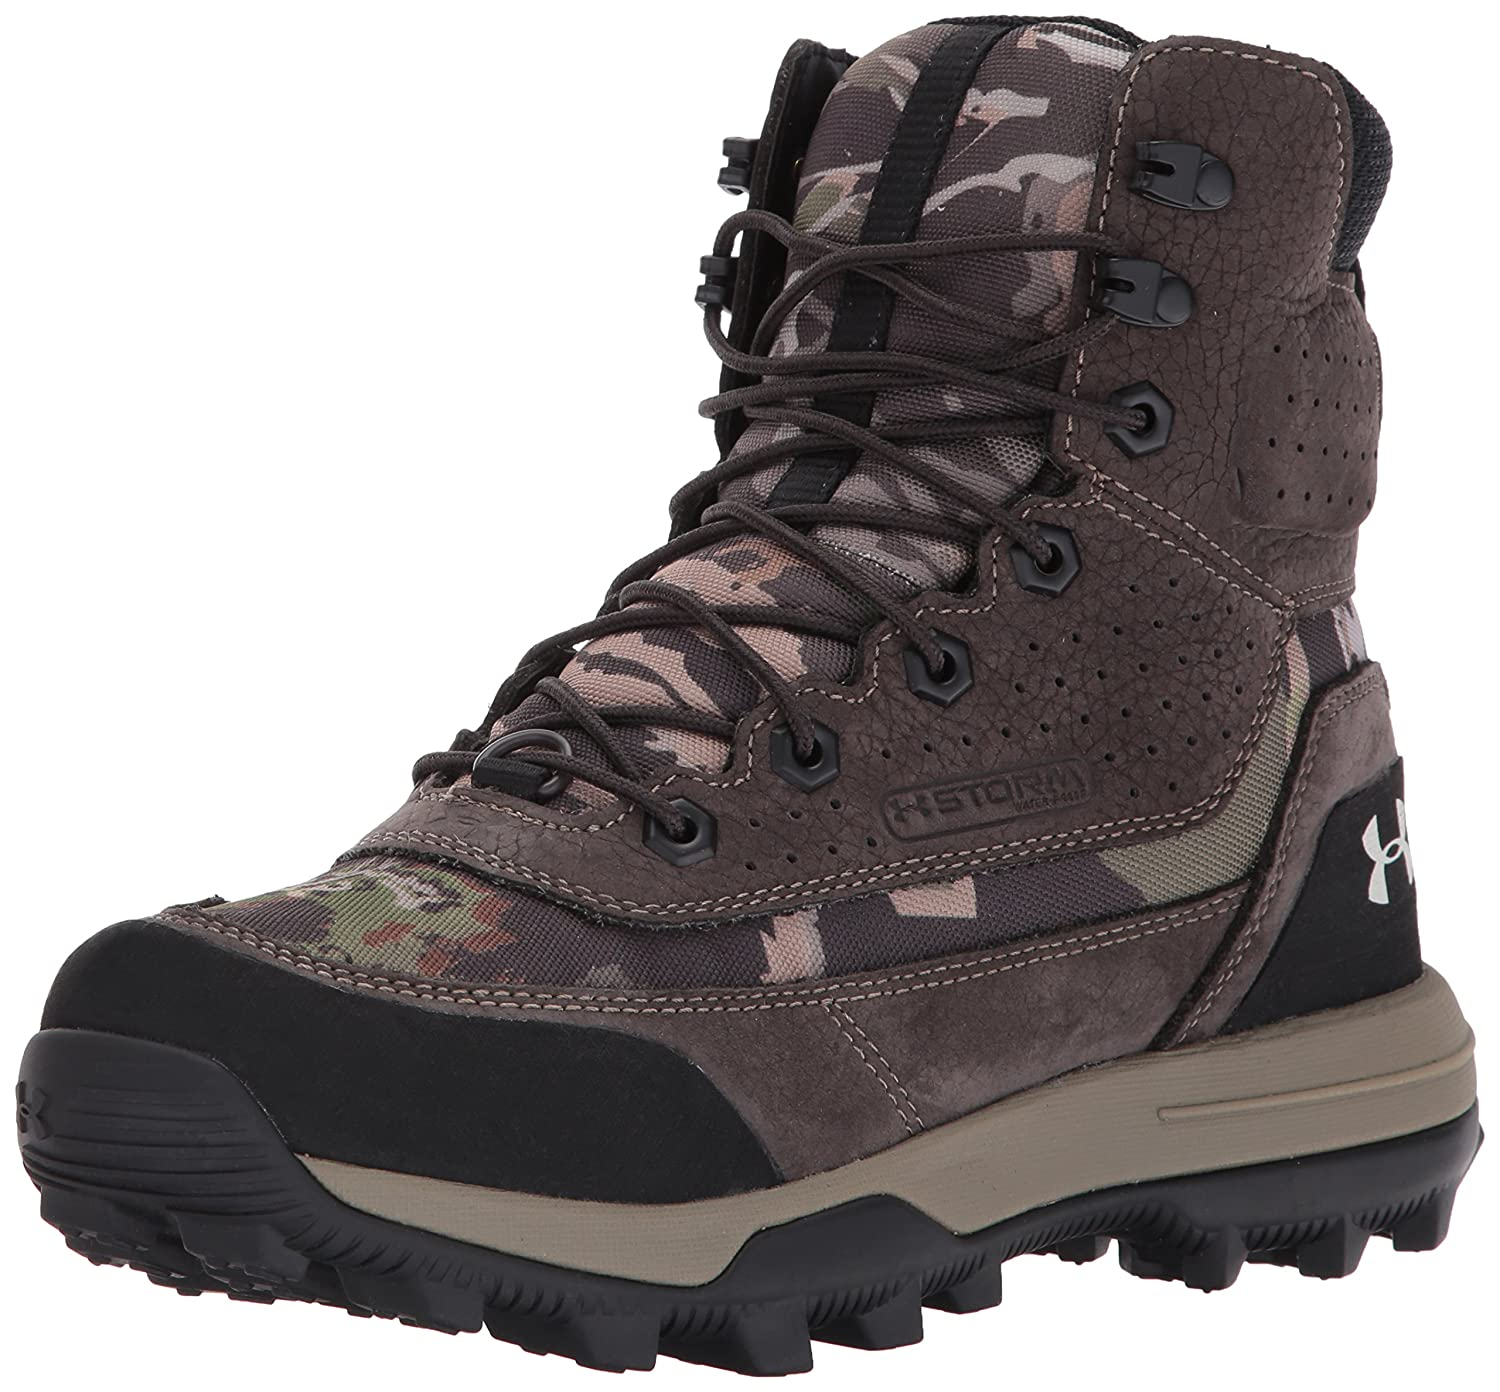 Image of Under Armour Women's SF Bozeman 2.0 Hiking Boot Ankle & Bootie